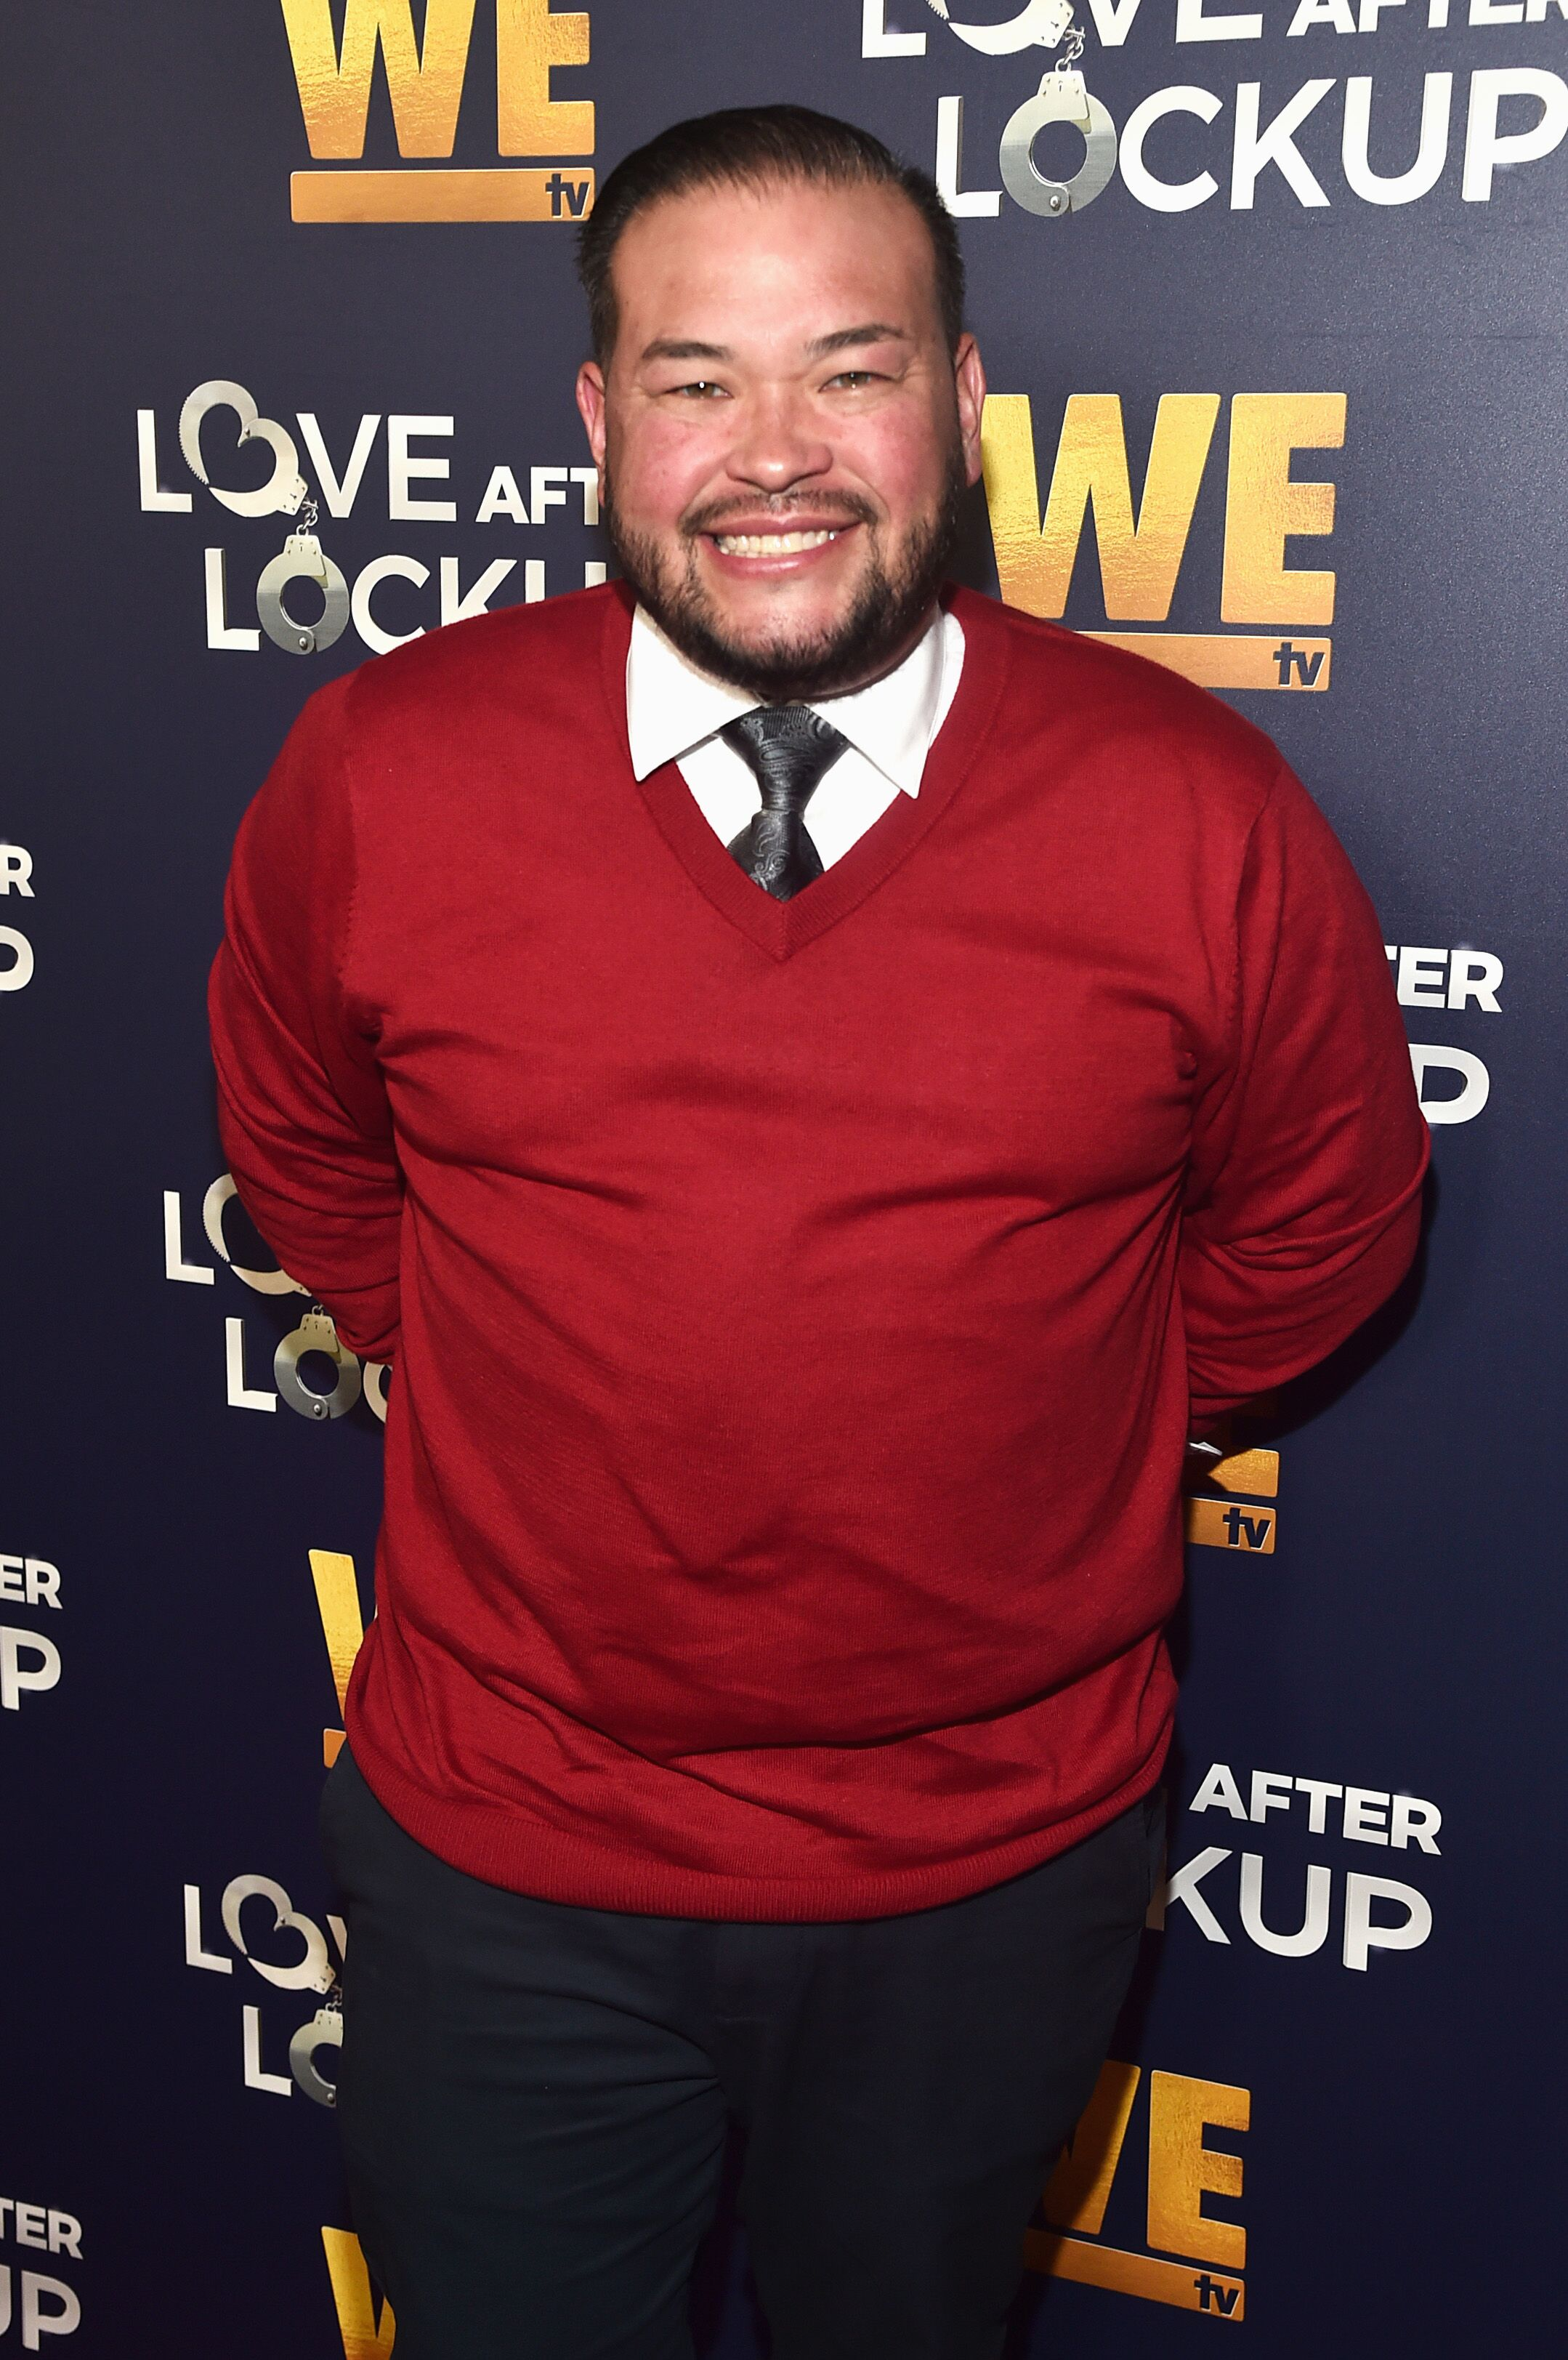 Jon Gosselin at WE tv on December 11, 2018, in Beverly Hills, California Photo Alberto E. Rodriguez Getty Images